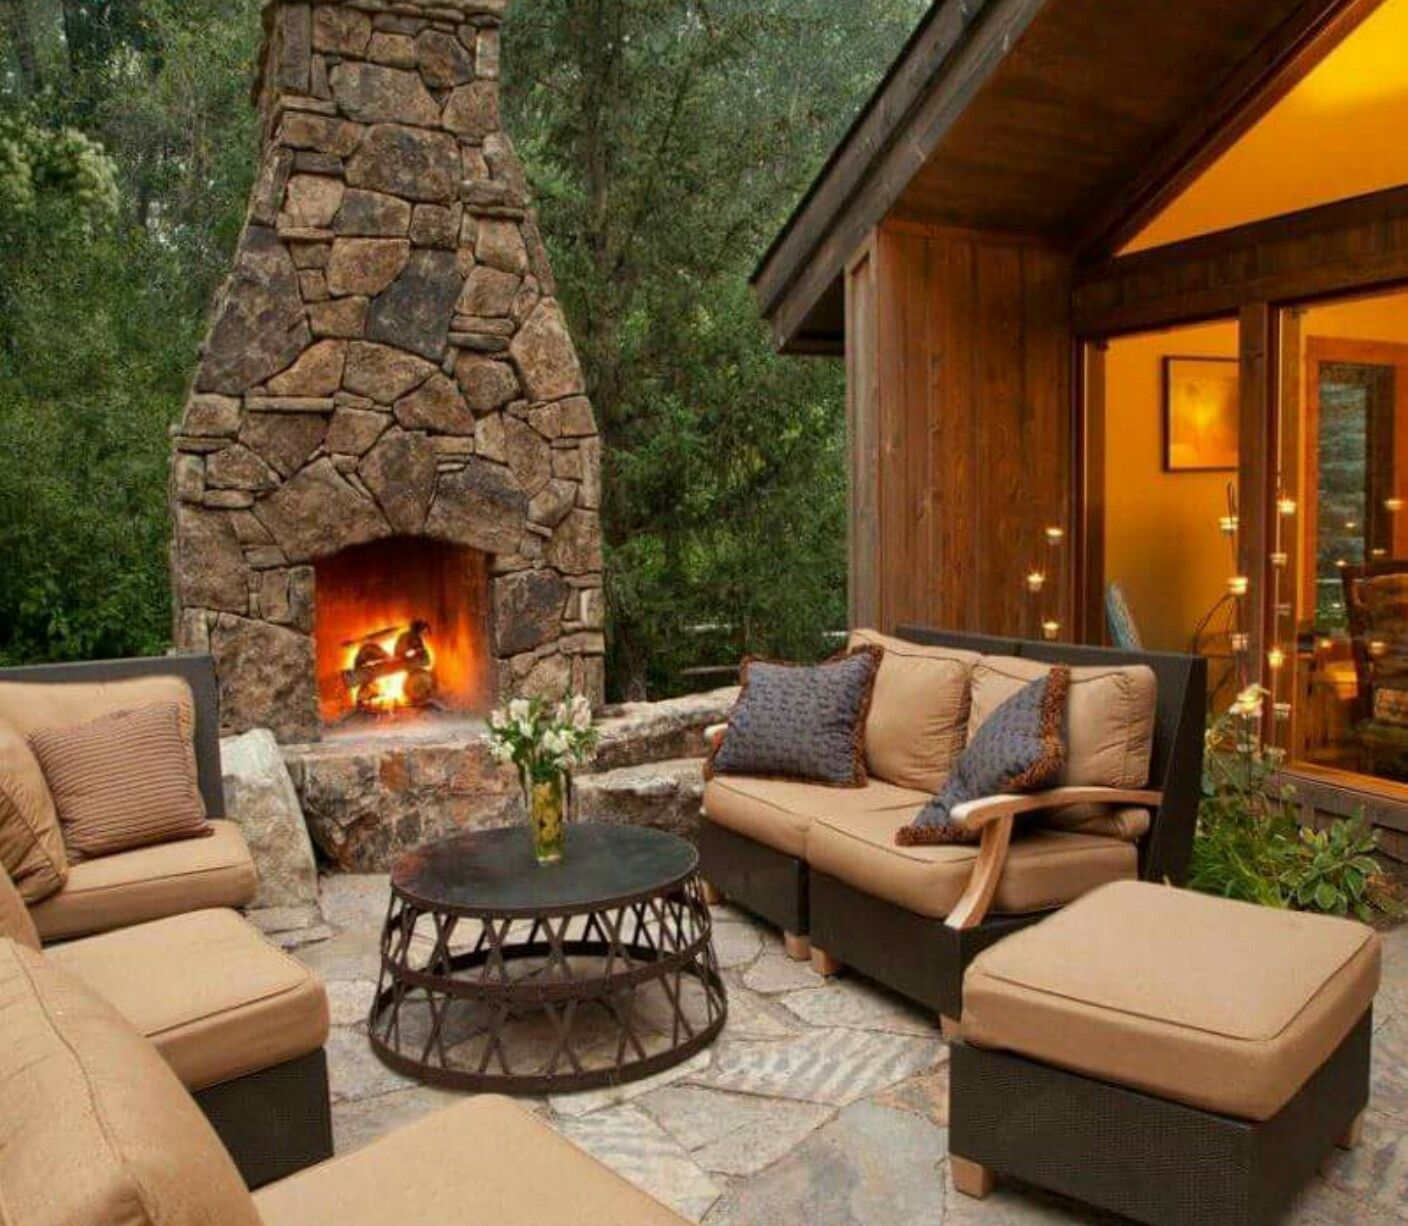 Pin by Margaret Shutze {Shutze Studio on Patios uncovered ... on Uncovered Patio Ideas id=14964